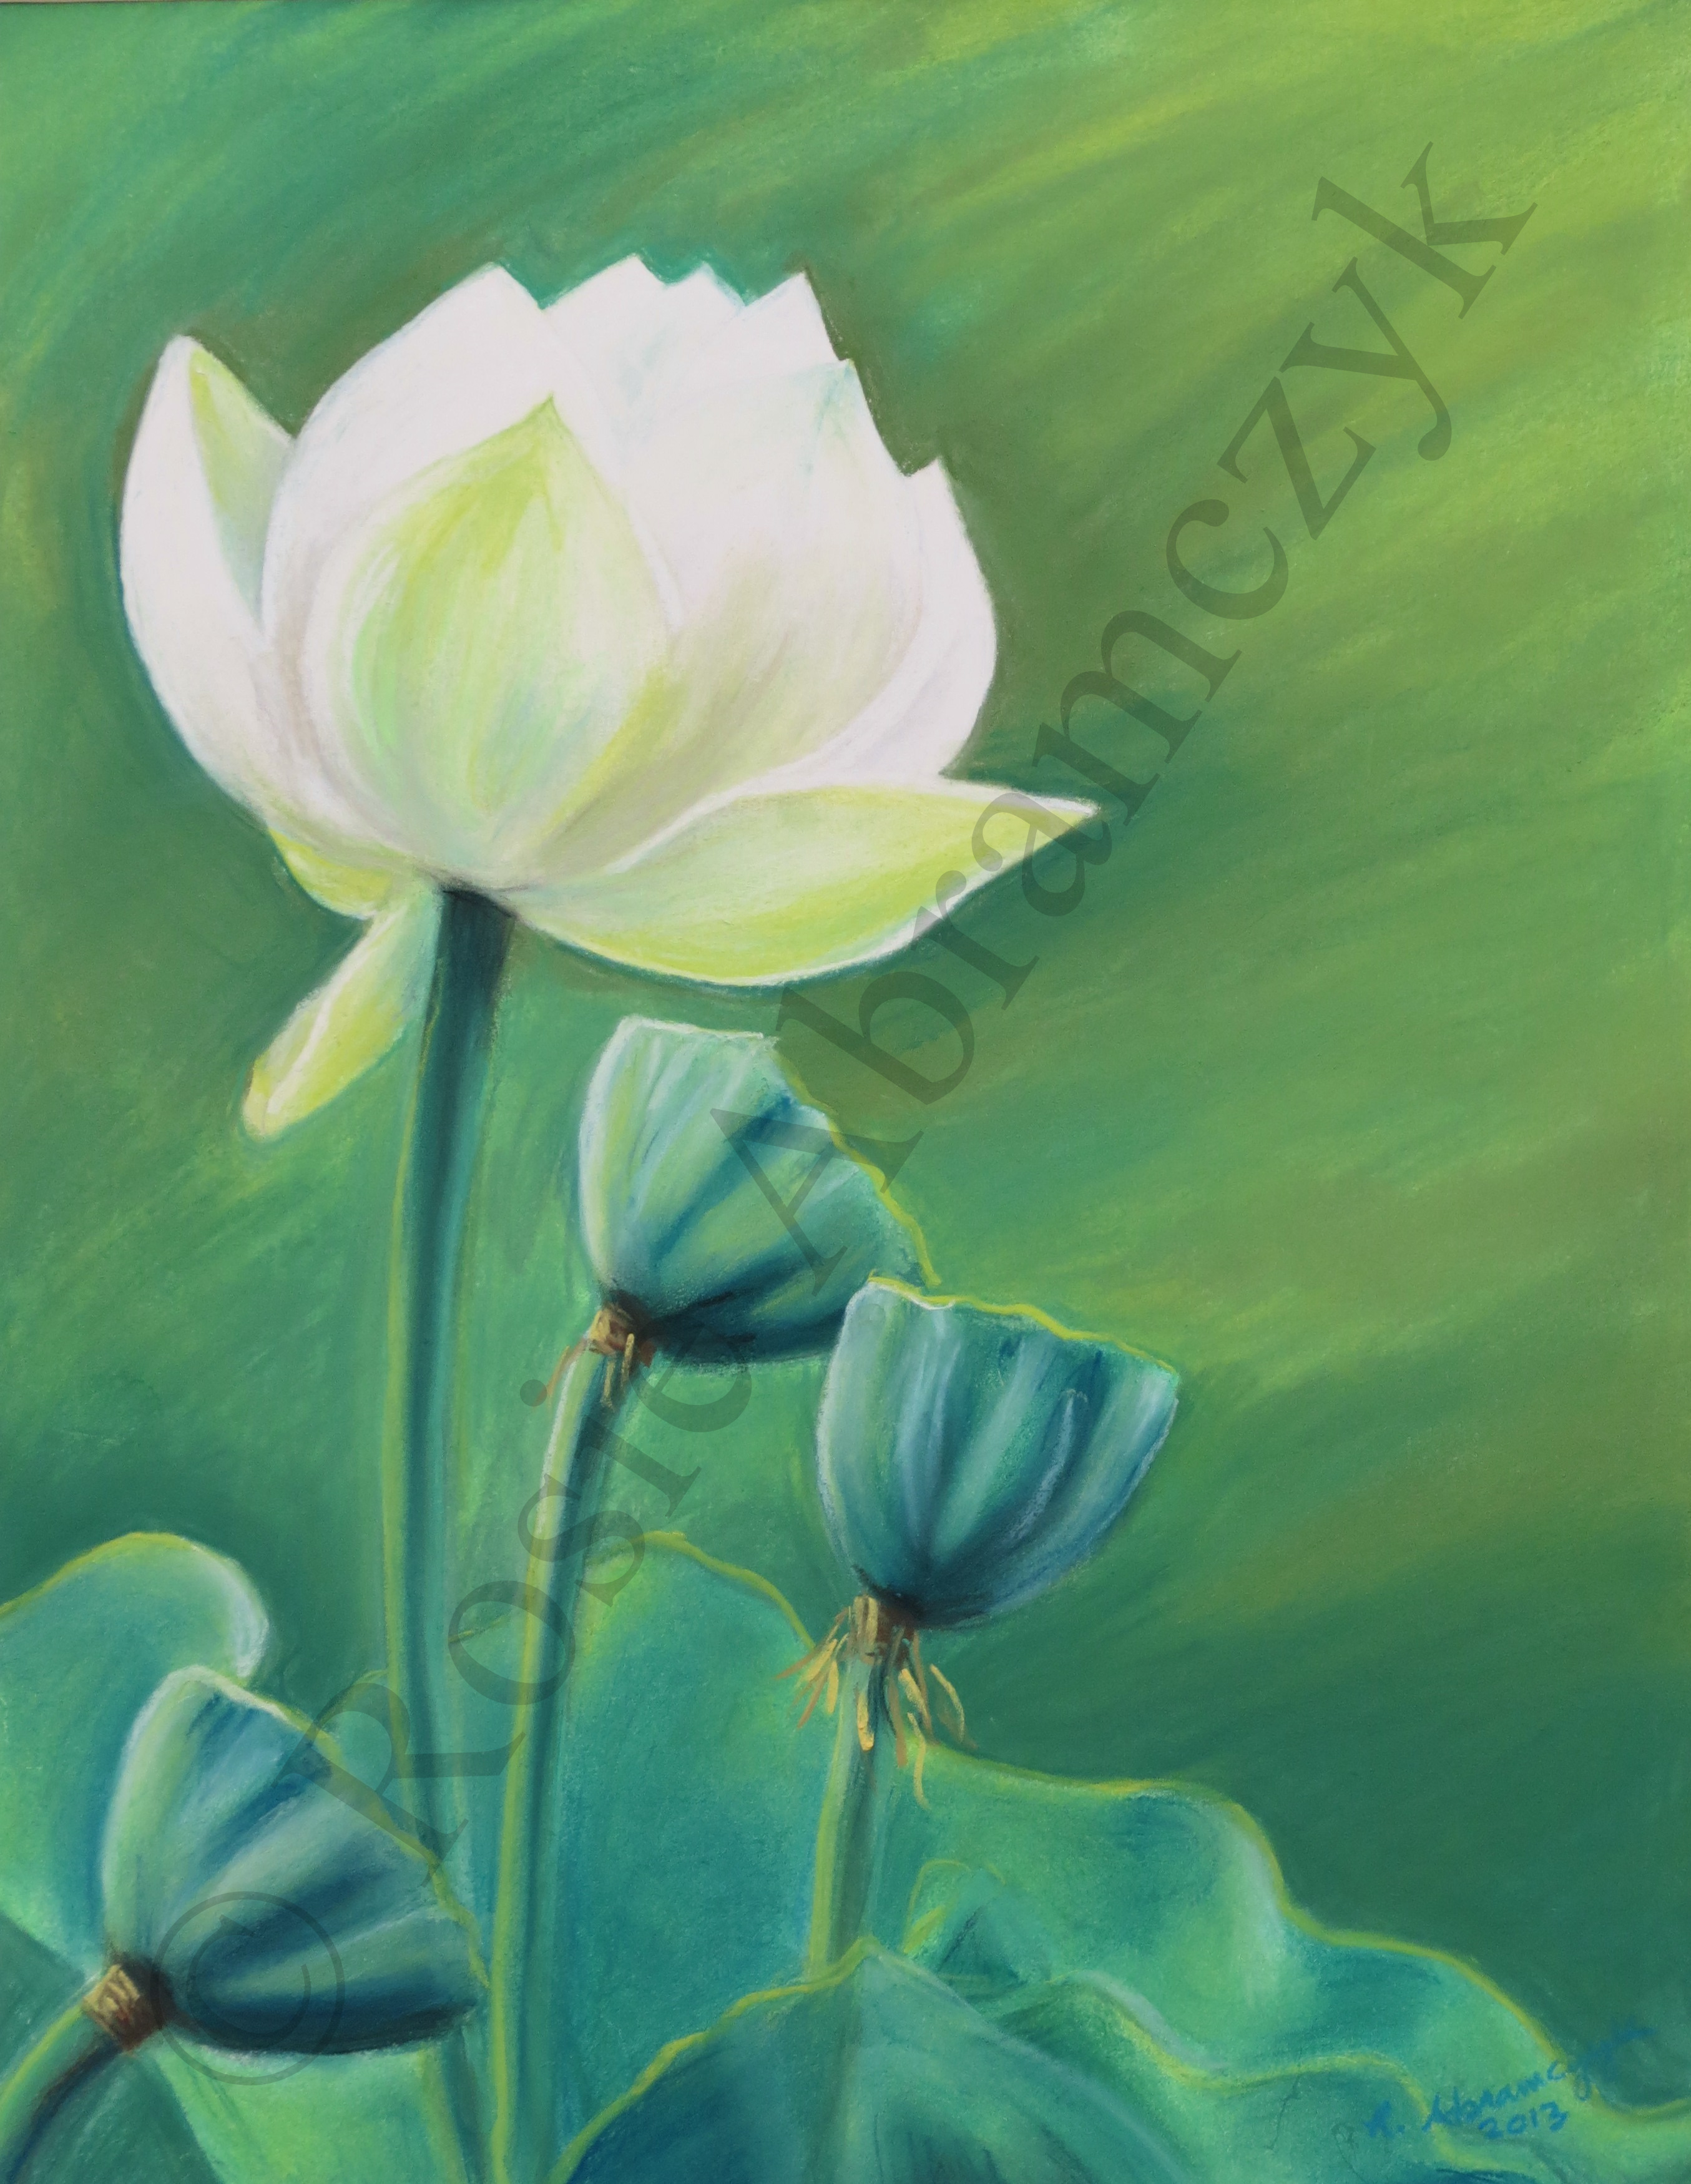 Lotus Flowers at Francis Park, by Rosie Abramczyk, Chalk Pastel, 2013